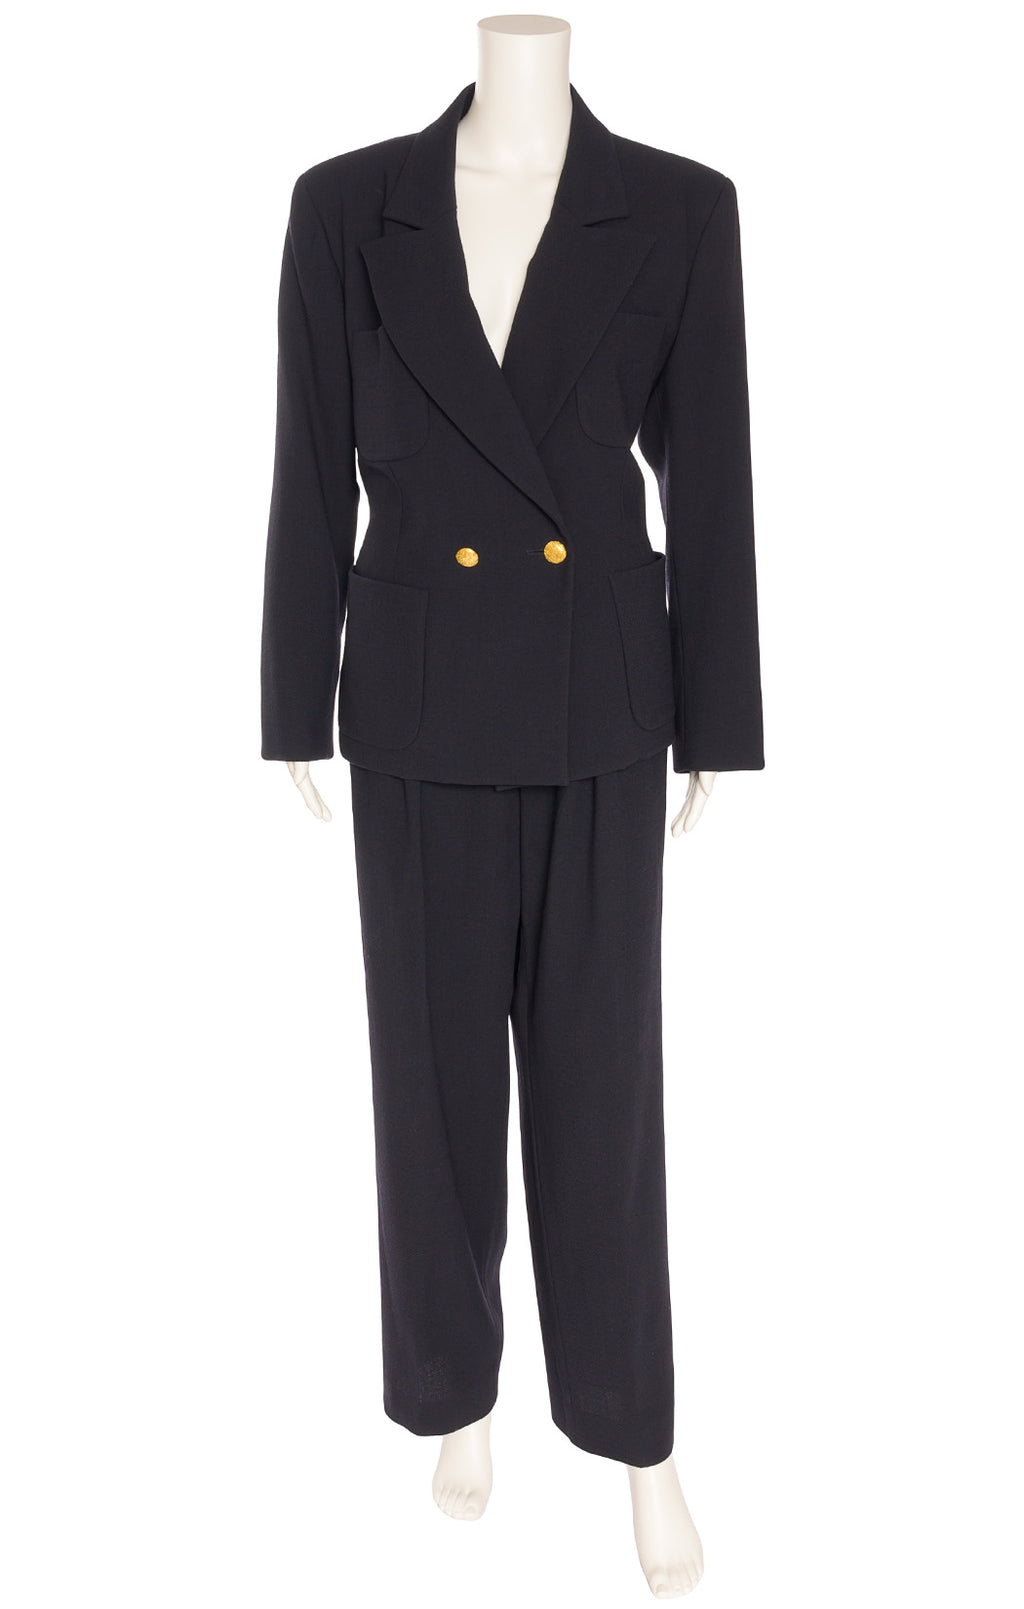 Navy double breasted jacket with front top and bottom pockets, gold buttons with matching trouser style pant with side pockets